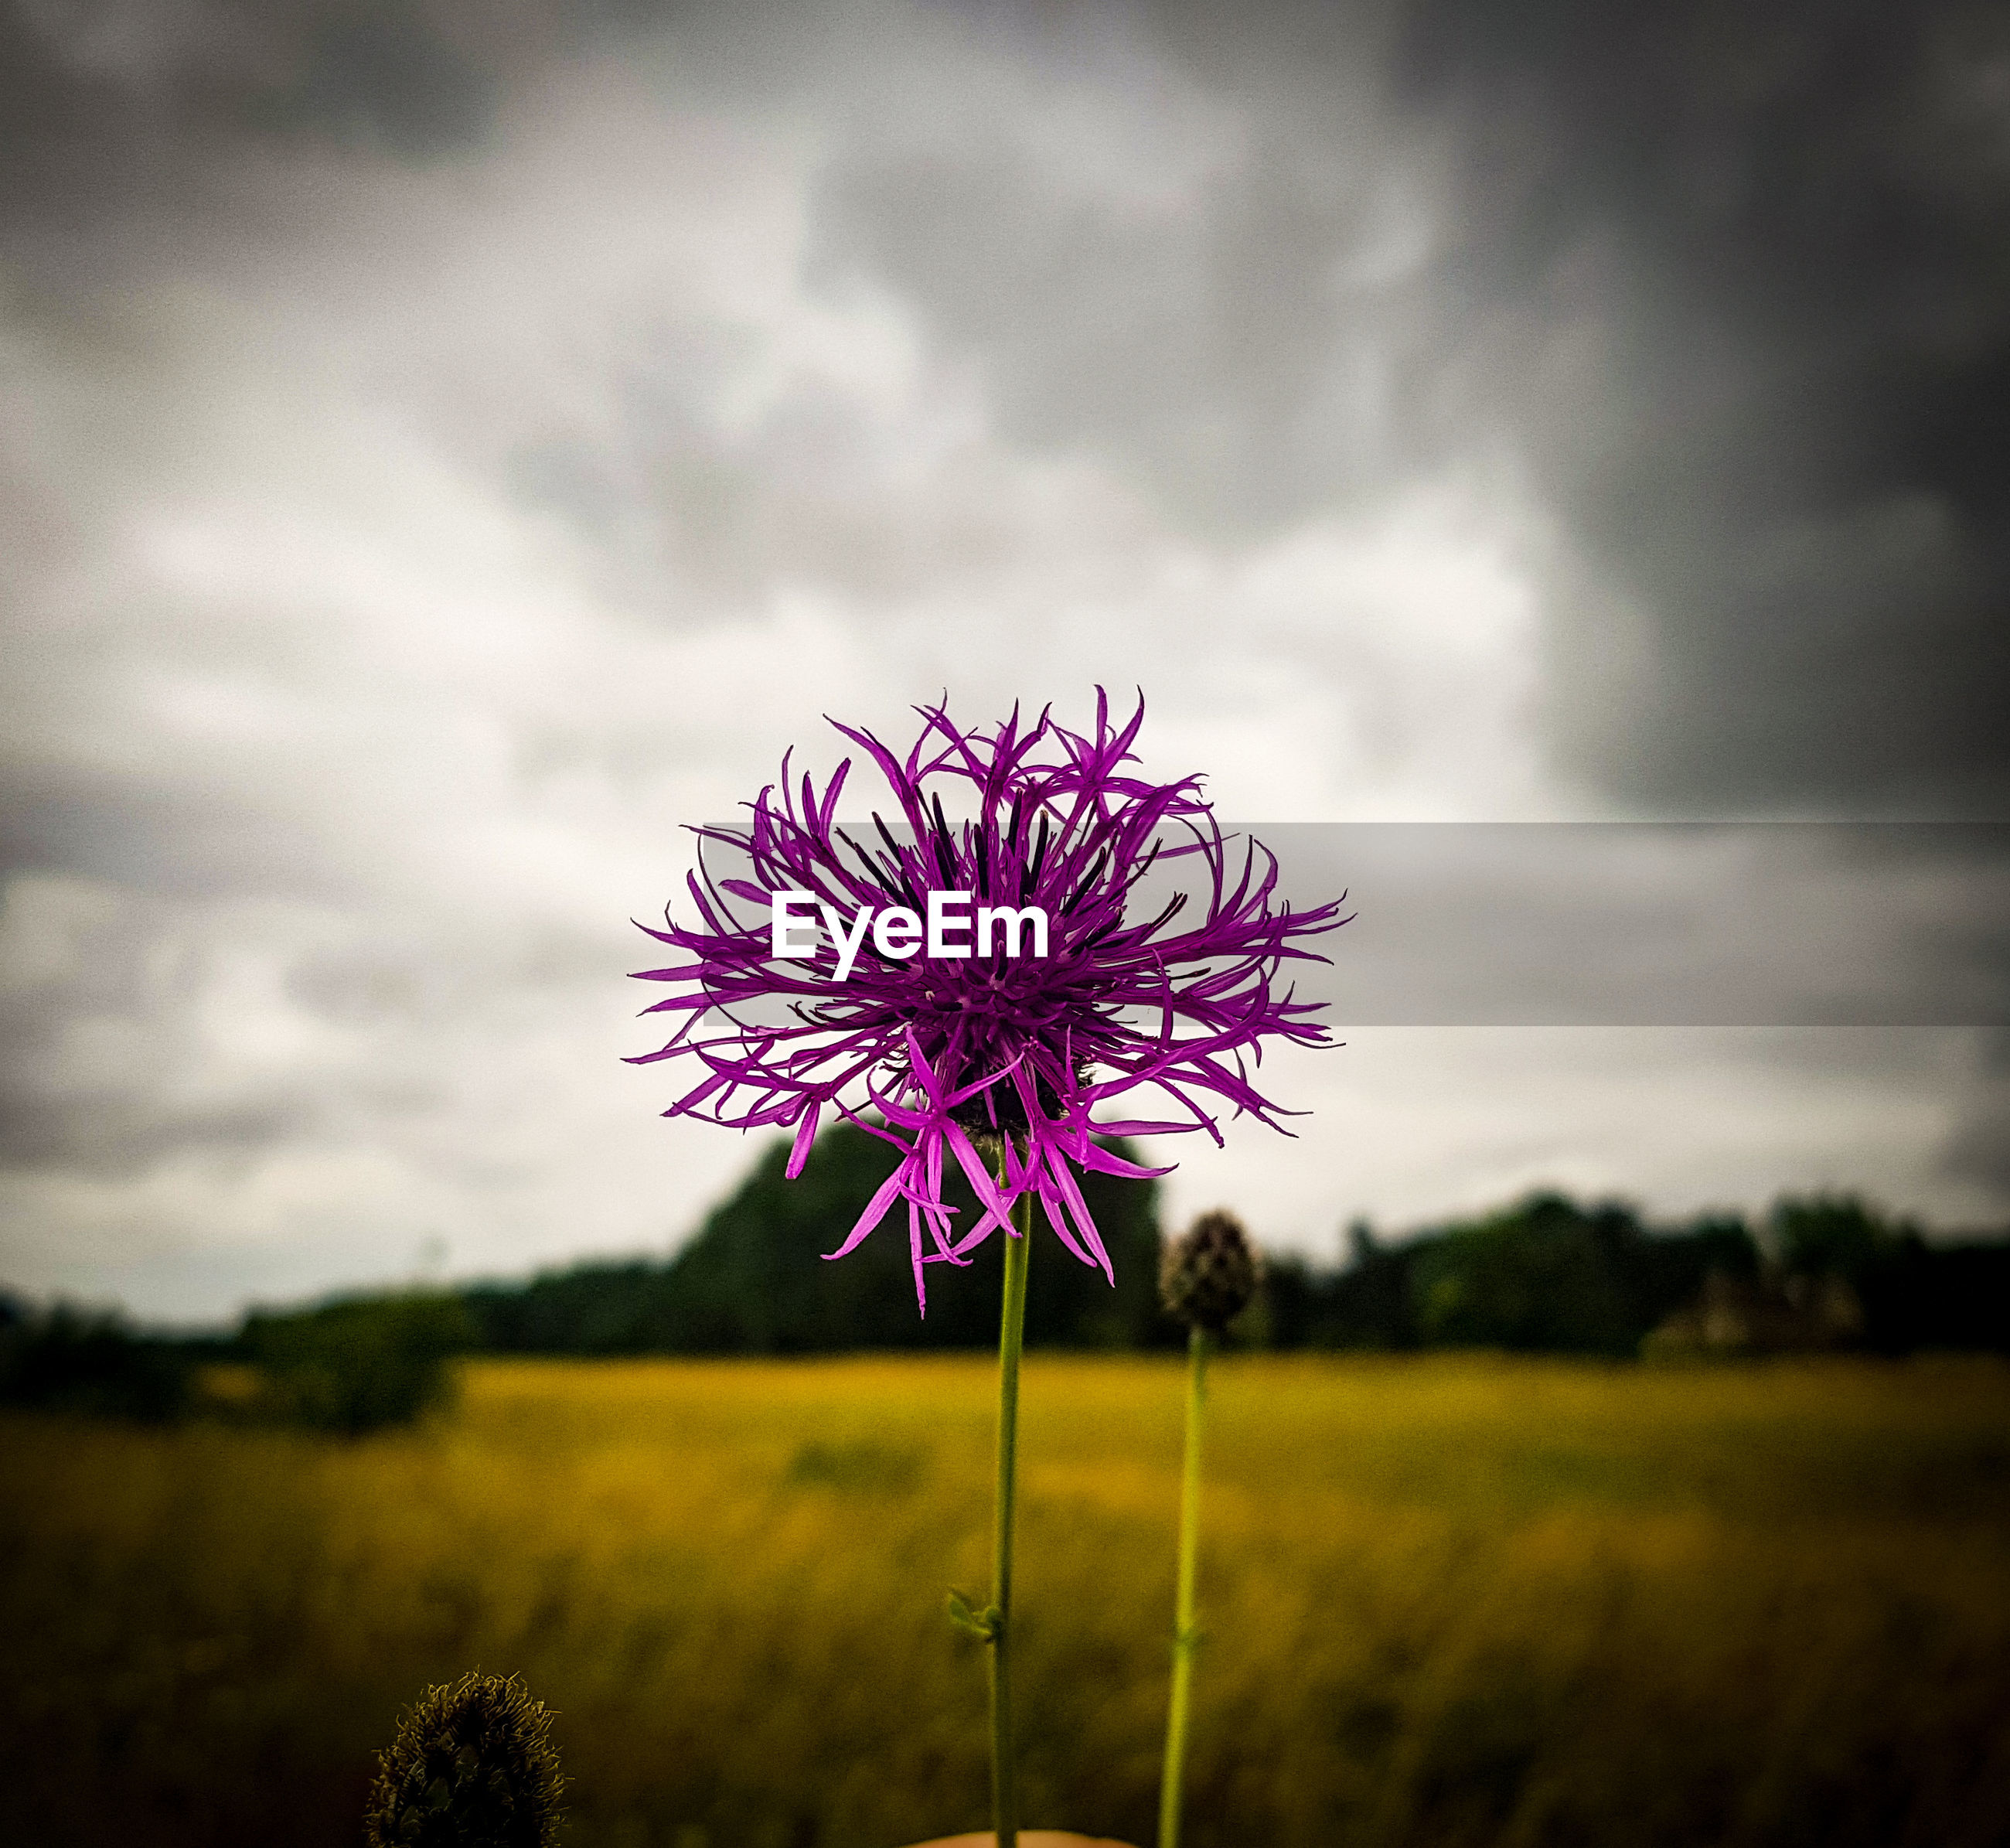 CLOSE-UP OF PURPLE FLOWER ON FIELD AGAINST SKY